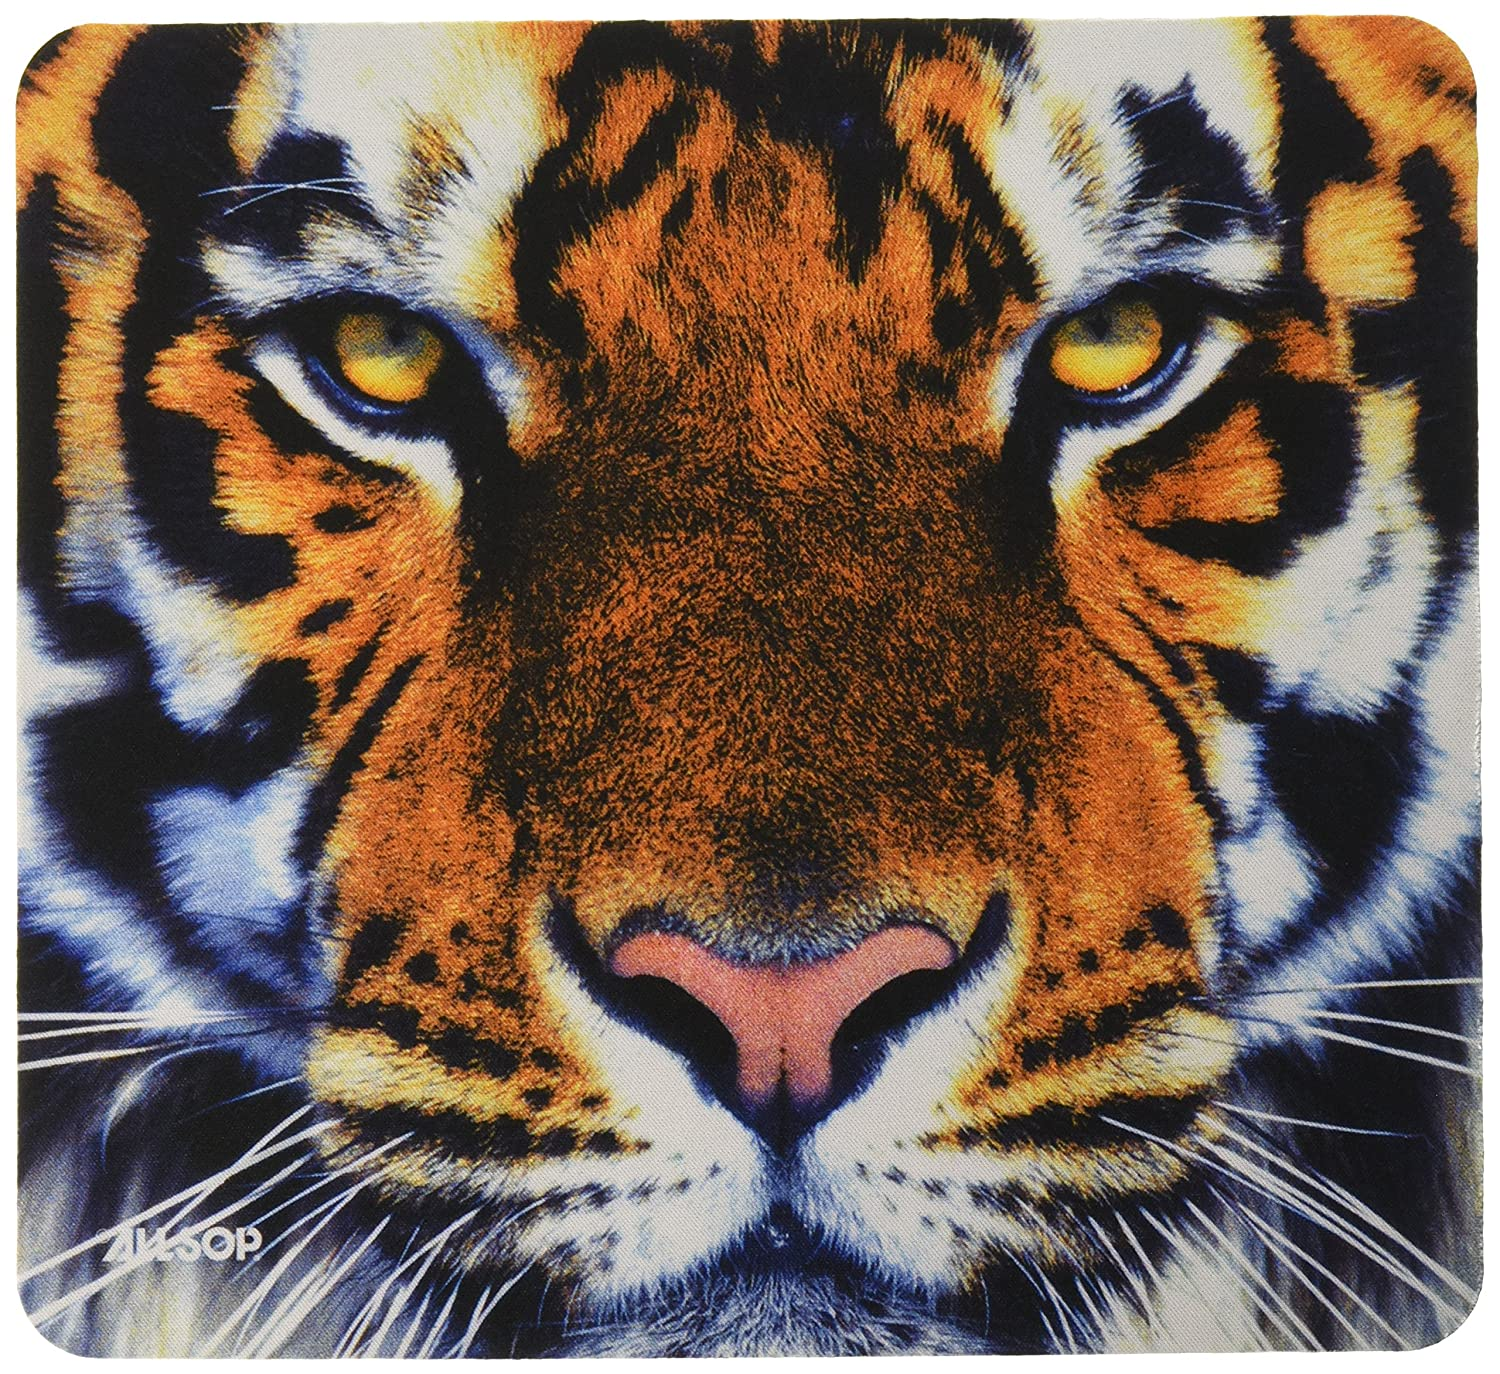 Allsop Nature's Smart Mouse Pad Tiger 60-Percent Recycled Content, Anti-Microbial (30188) Desk Accessories